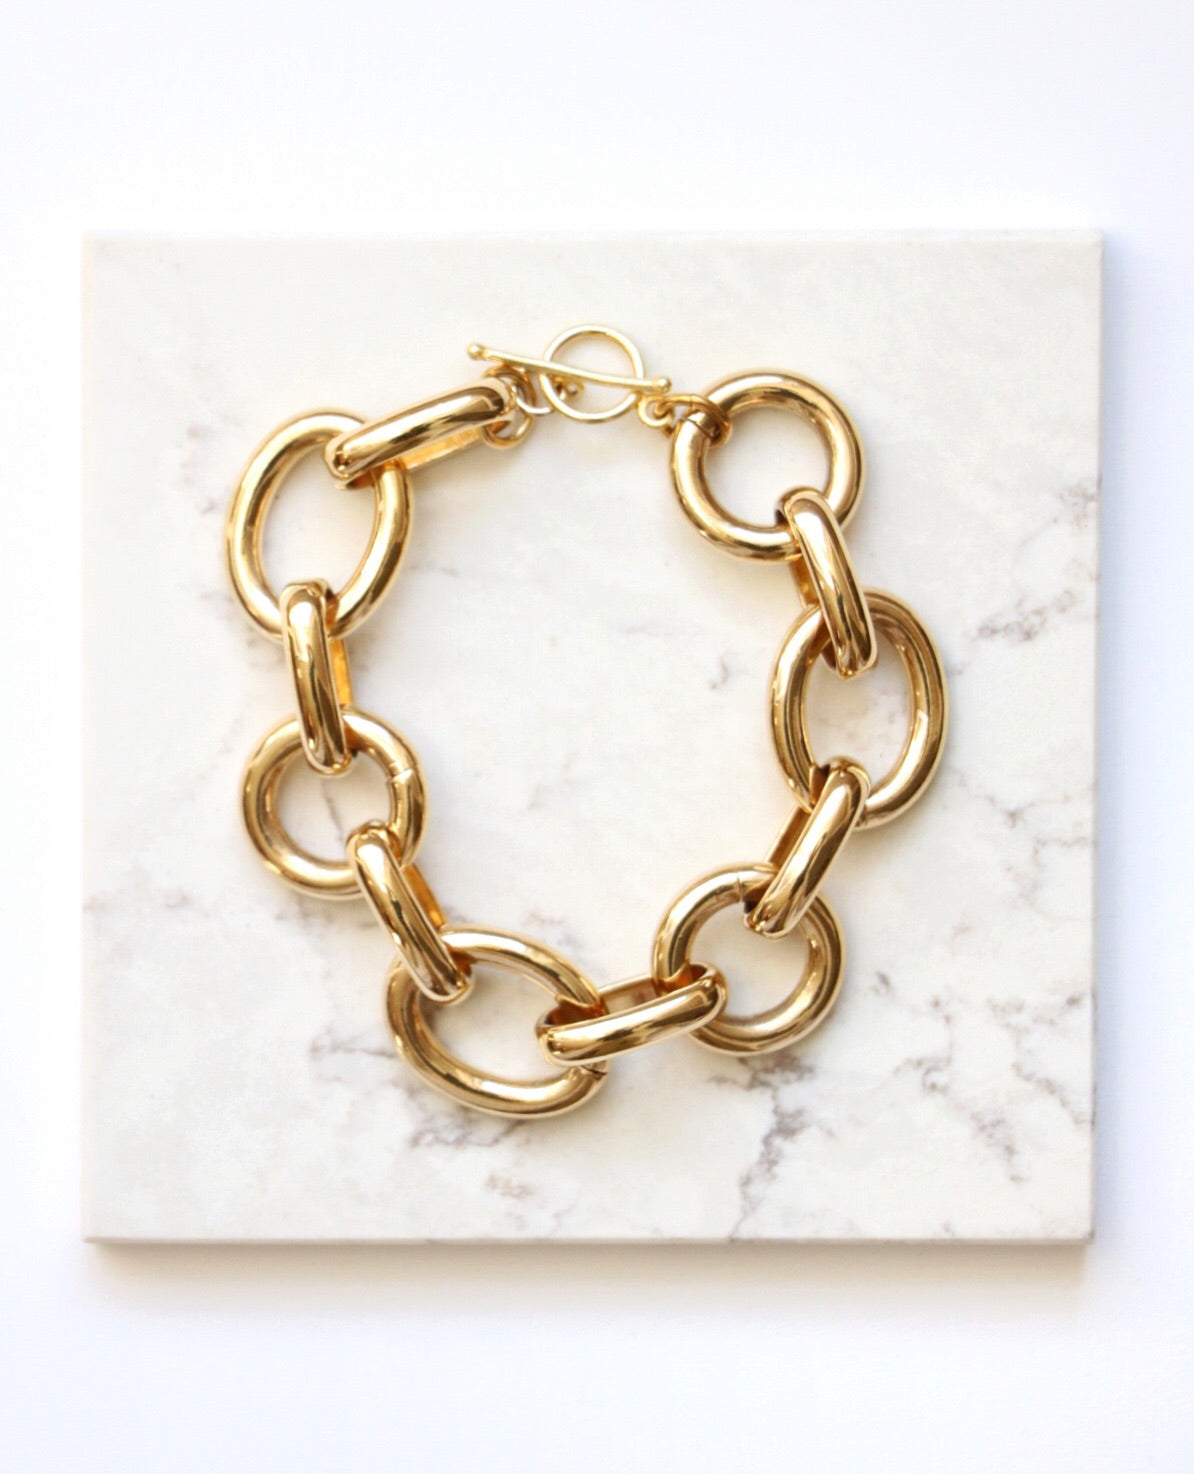 gold link bracelet, oval link bracelet, what to wear to a wedding, gold bracelet